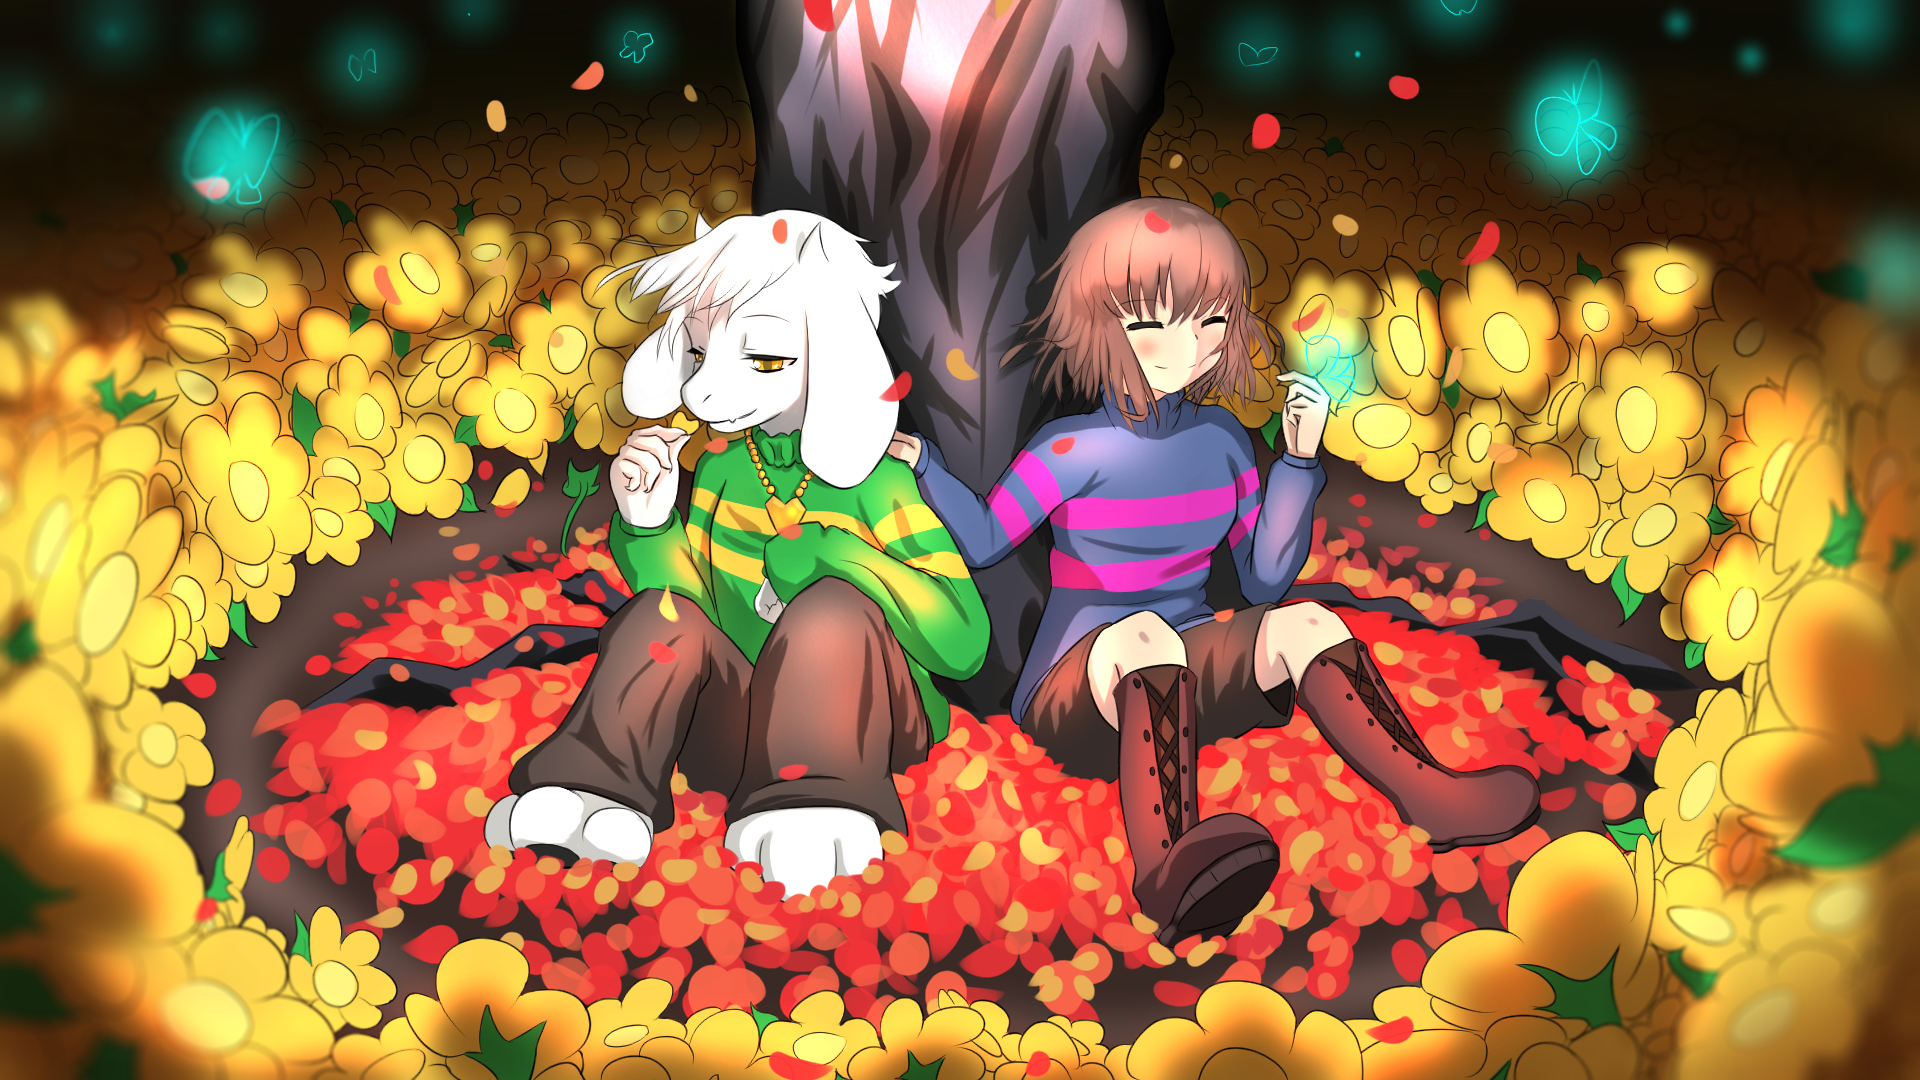 1920x1080 - Undertale Wallpaper 1920x1080 17